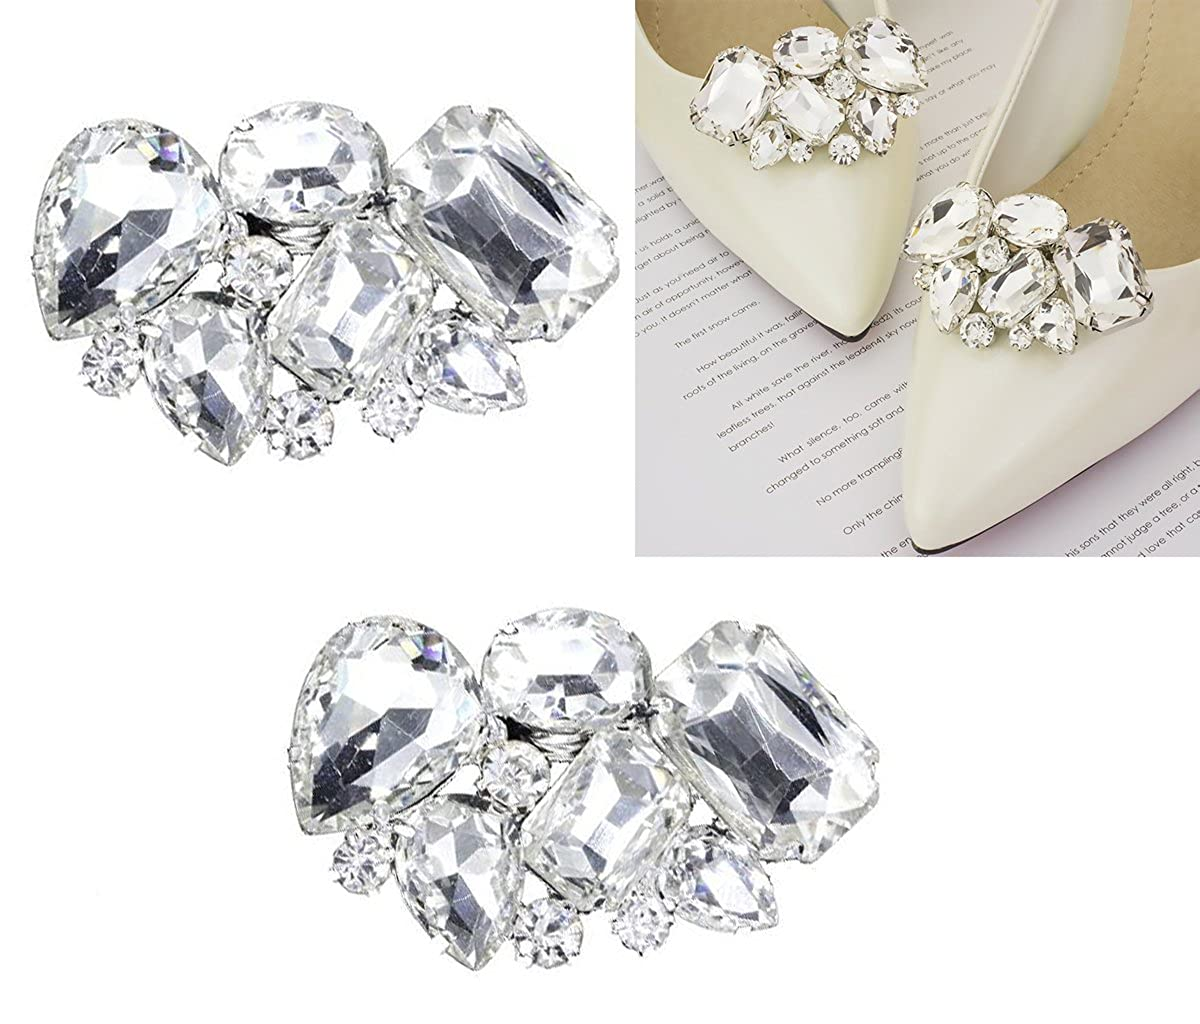 2PCS Elegant Rhinestone Crystal Shoe Clips Shoe Buckle Shoes Decoration Charms for Women Girls Party Bridal Wedding Fodattm